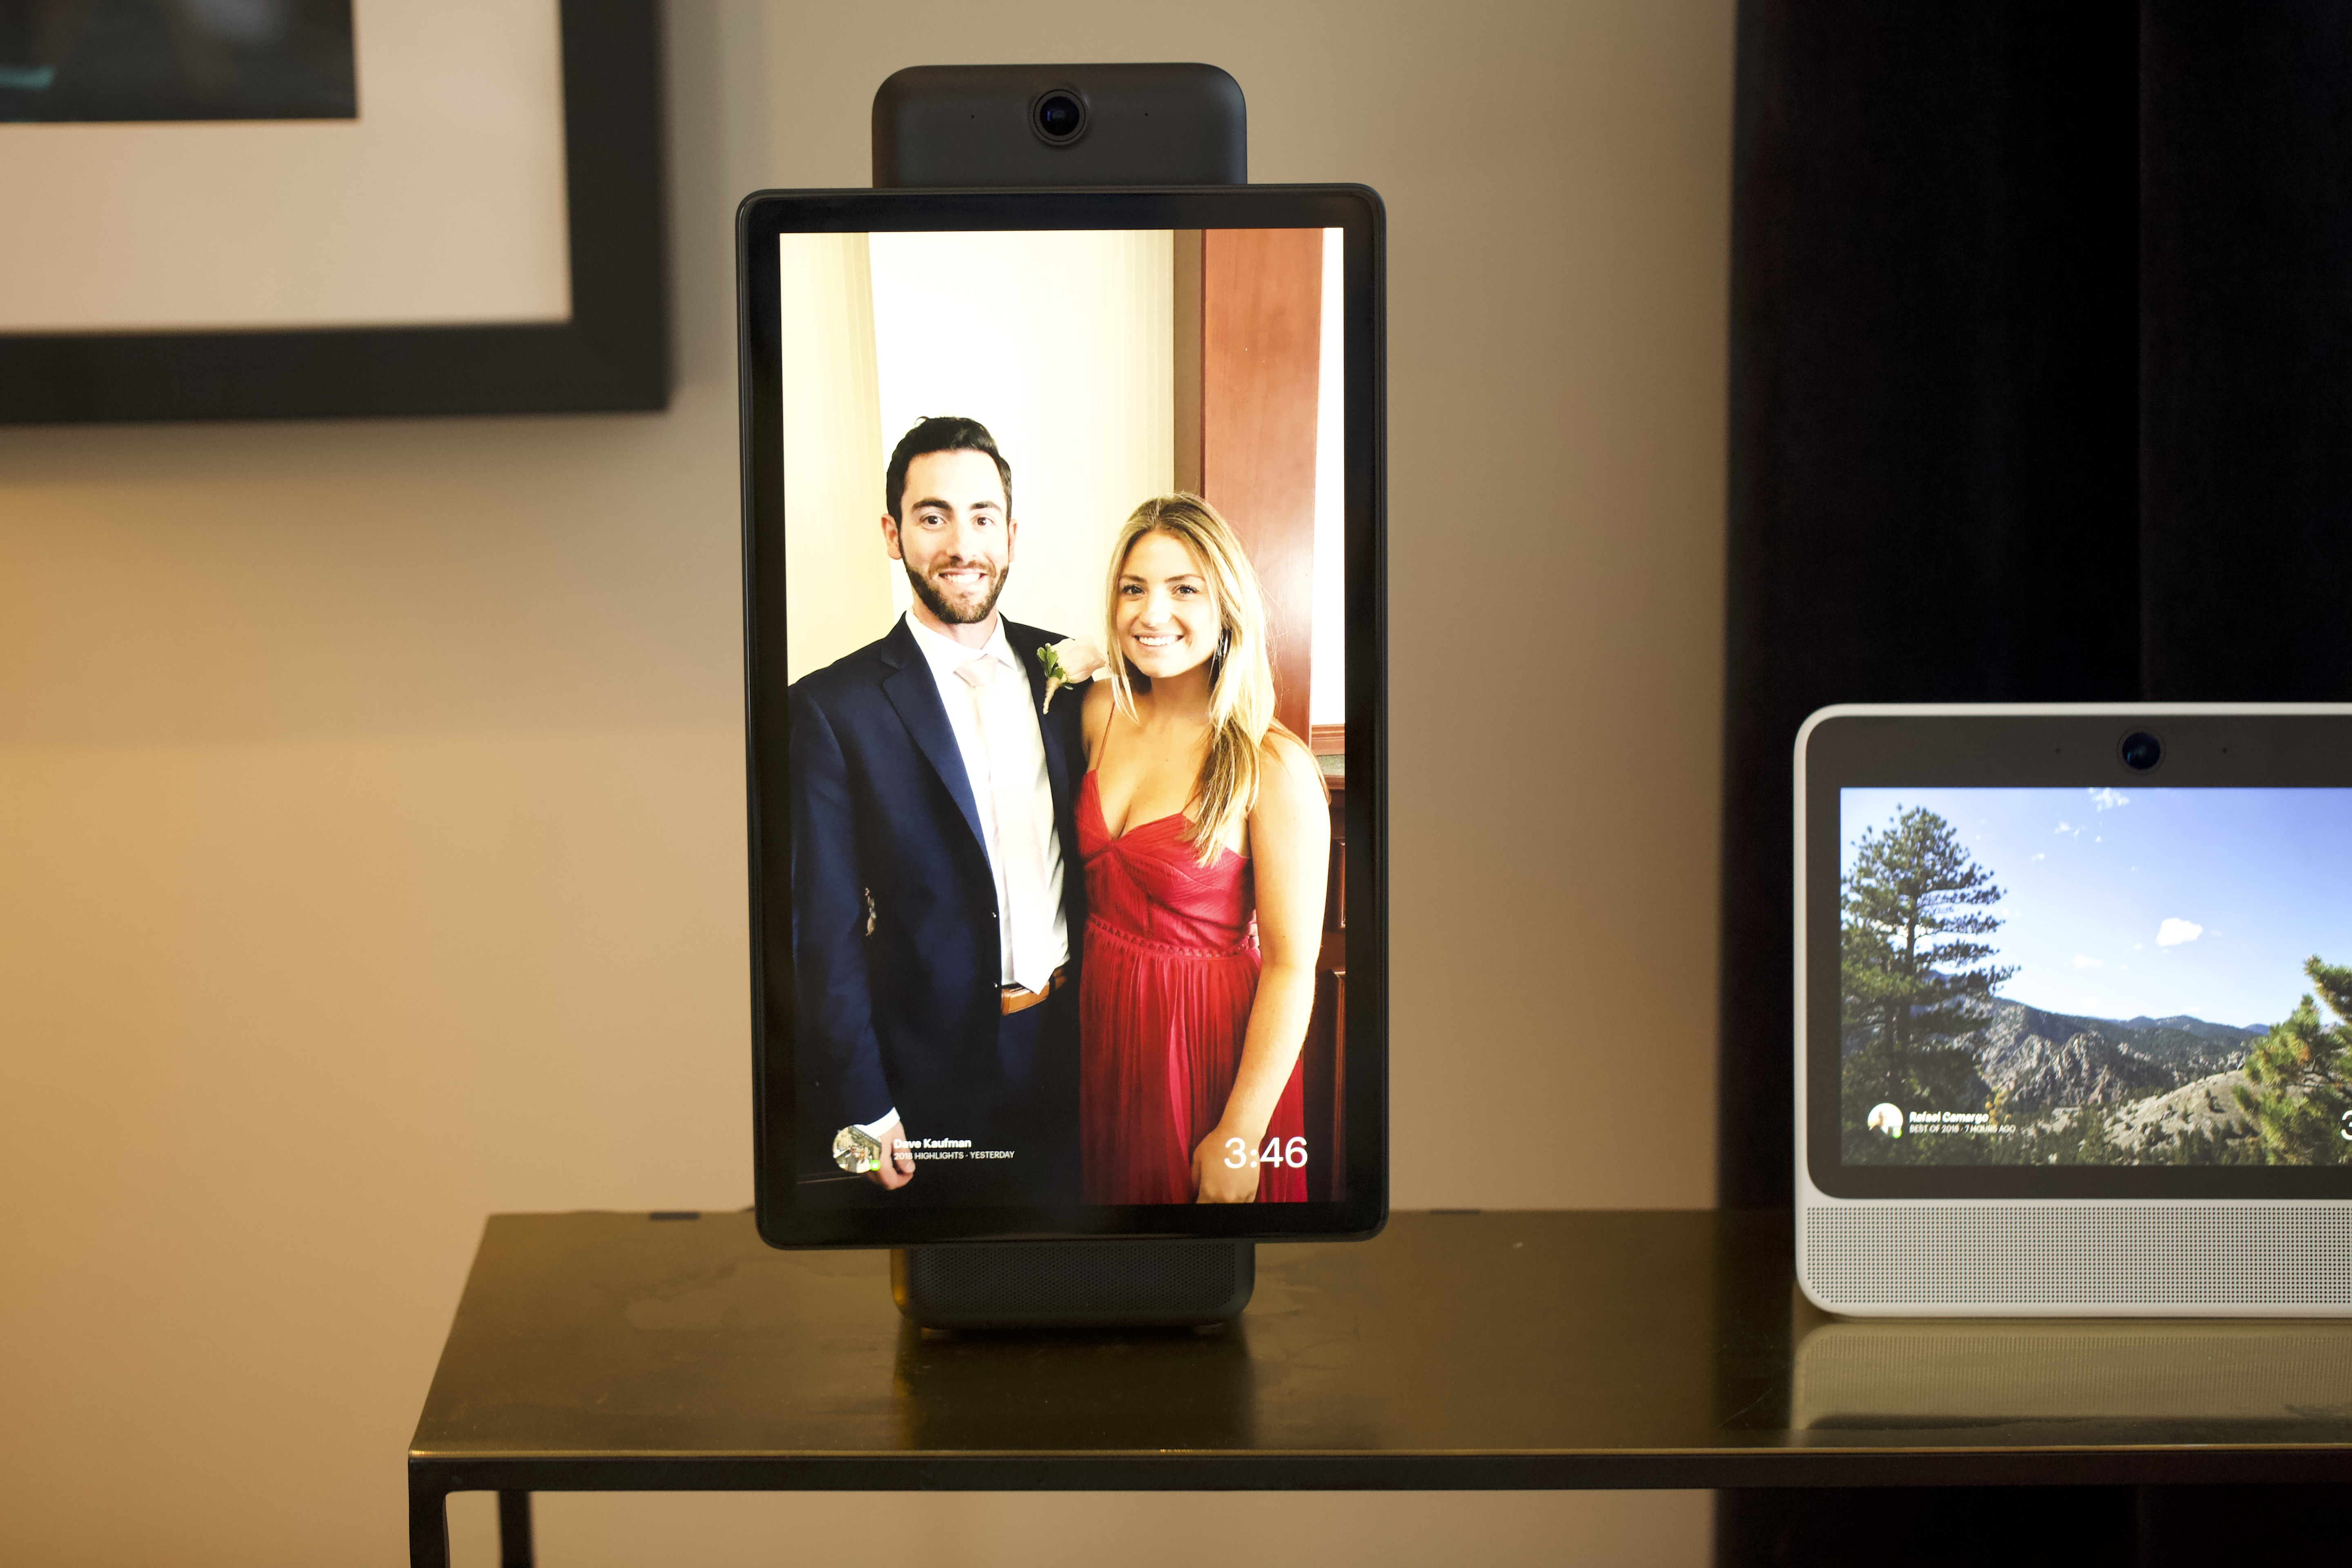 Facebook tries its hand at hardware with Portal   TechCrunch